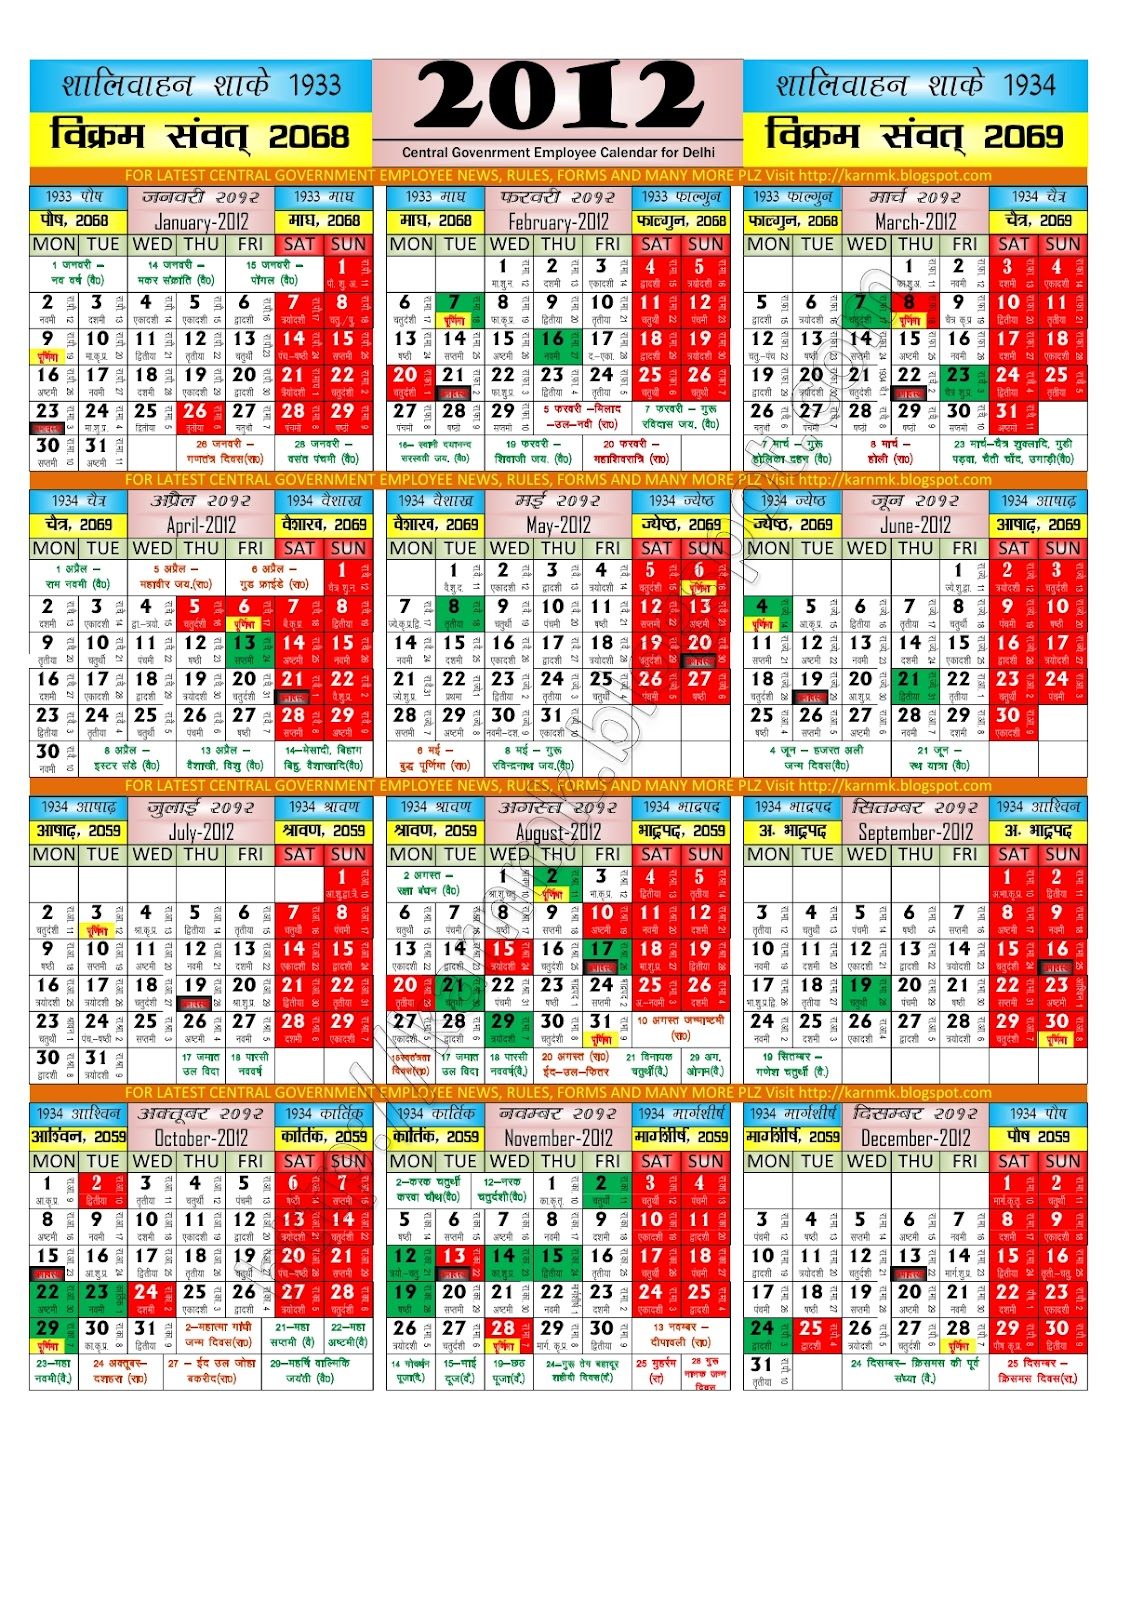 calendar for central government offices delhi central government